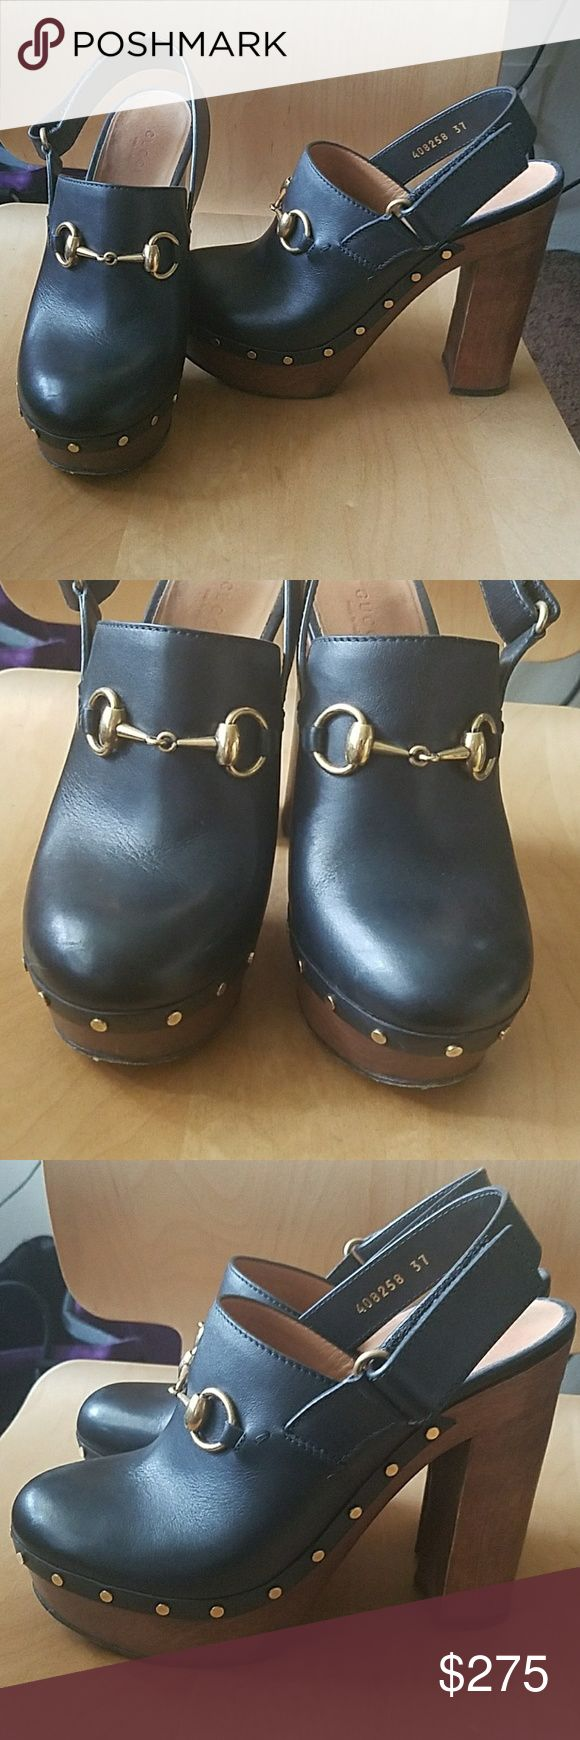 Gucci Amstel horsebit high heel clogs Gorgeous high heeled Gucci clogs. Alessandro Michele at his finest! Currently selling on Net-a-Porter for $490. A great deal, and in great condition. Gucci Shoes Mules & Clogs